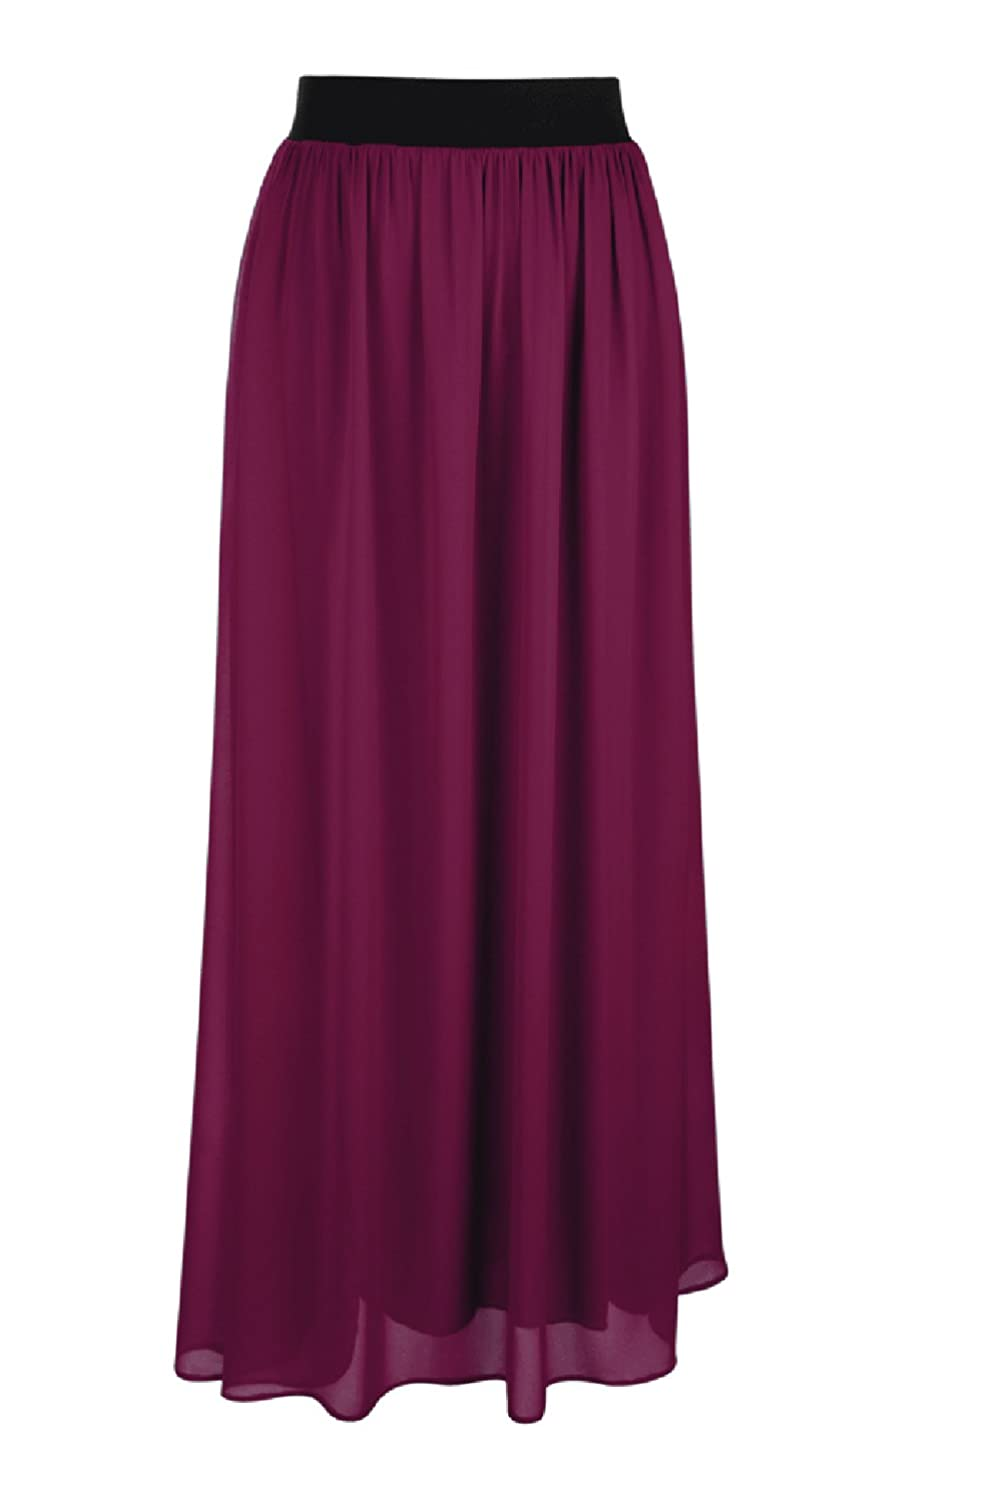 d90d40cd5a ... High Quality Chiffon; Lining, Banded Elastic Waist; Machine washable;  30%OFF Faship Women Long Retro Pleated Maxi Skirt